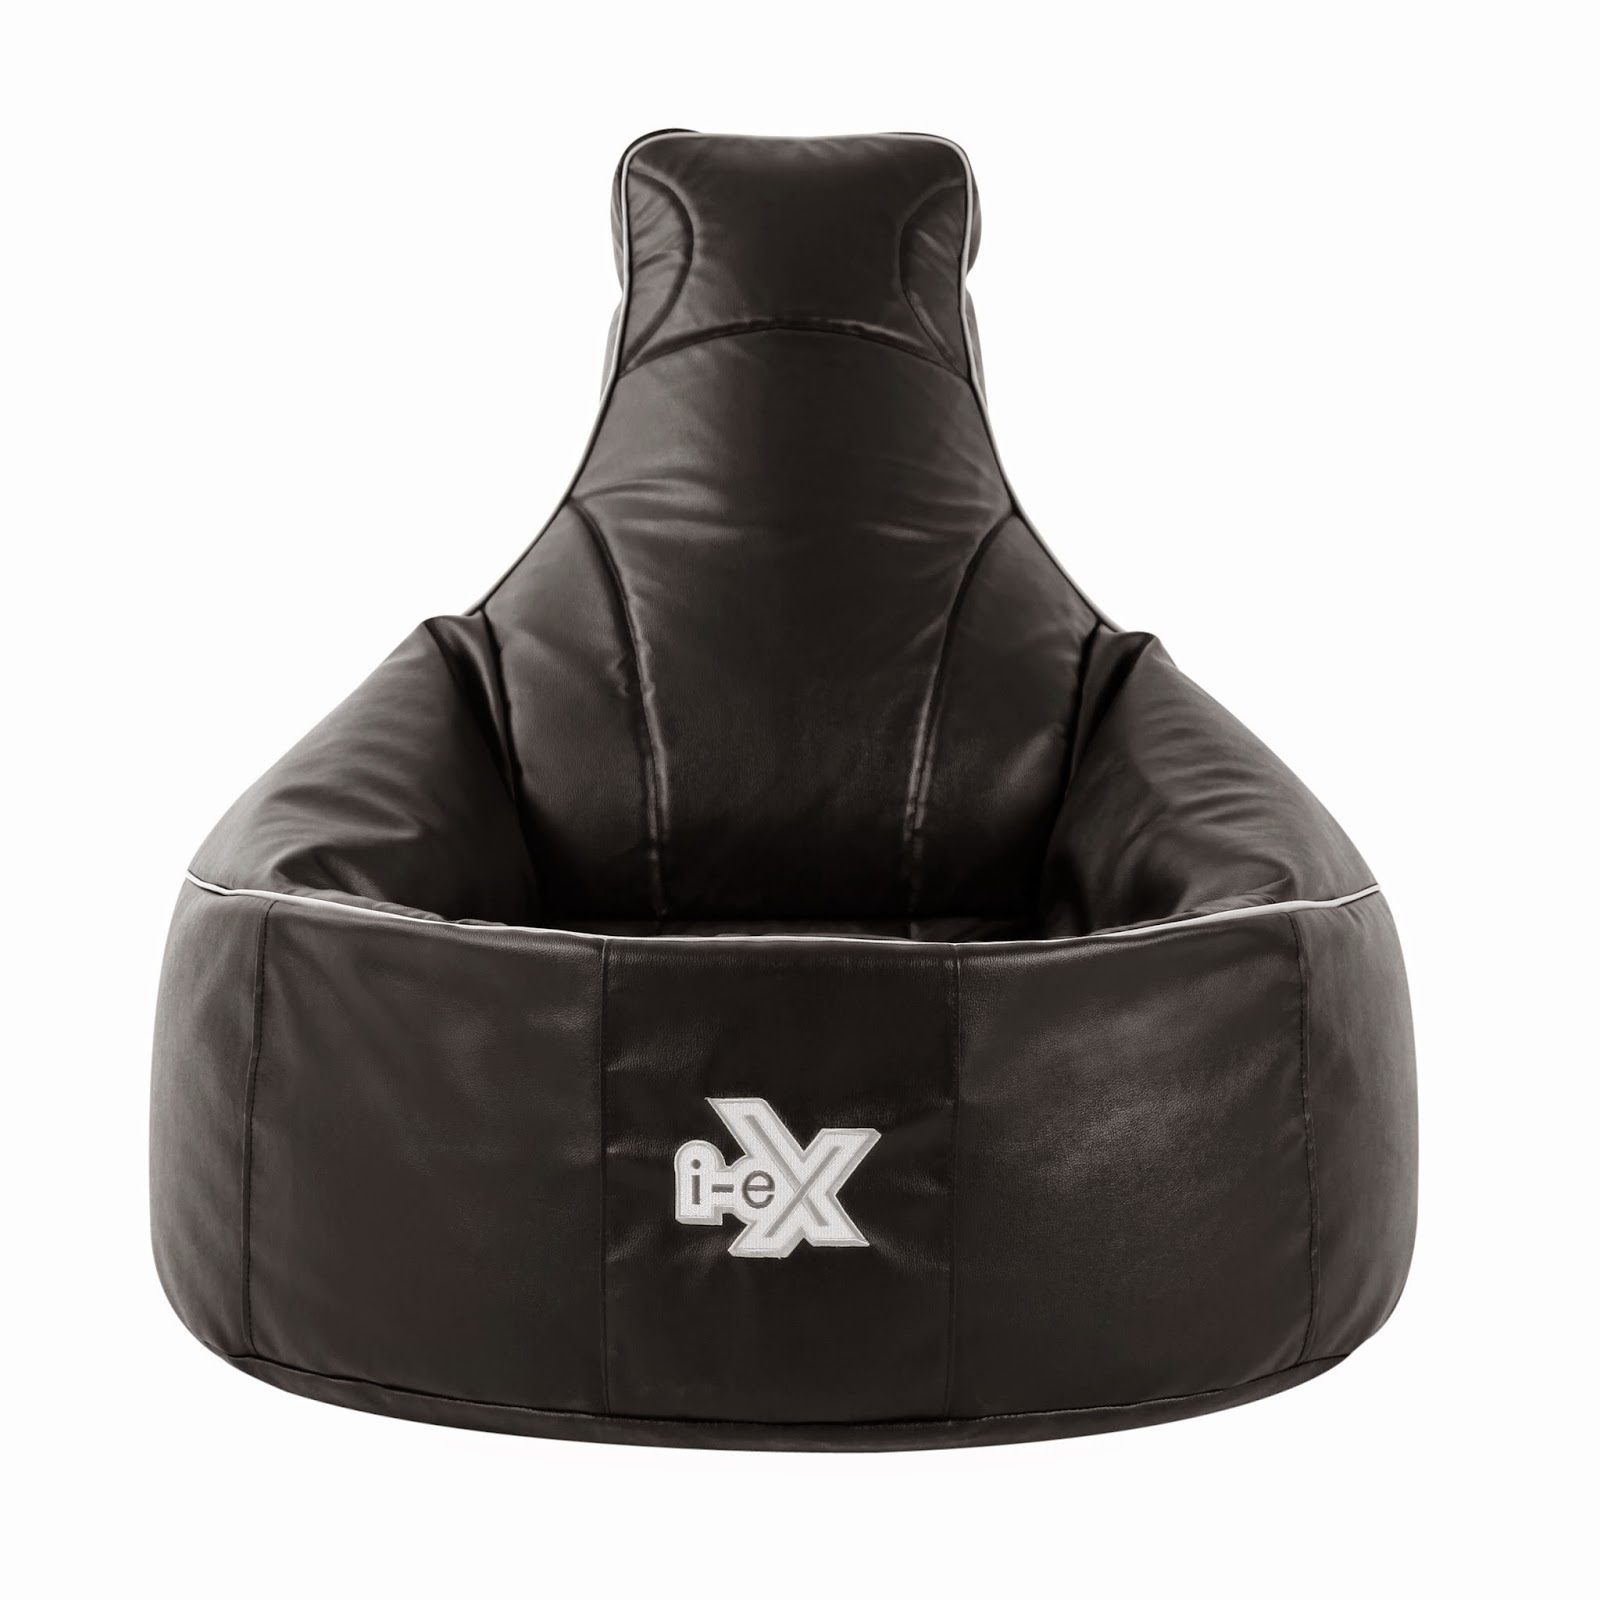 REVIEW i-eX Bean Bag Gaming Chair  sc 1 st  The Test Pit & REVIEW: i-eX Bean Bag Gaming Chair | The Test Pit